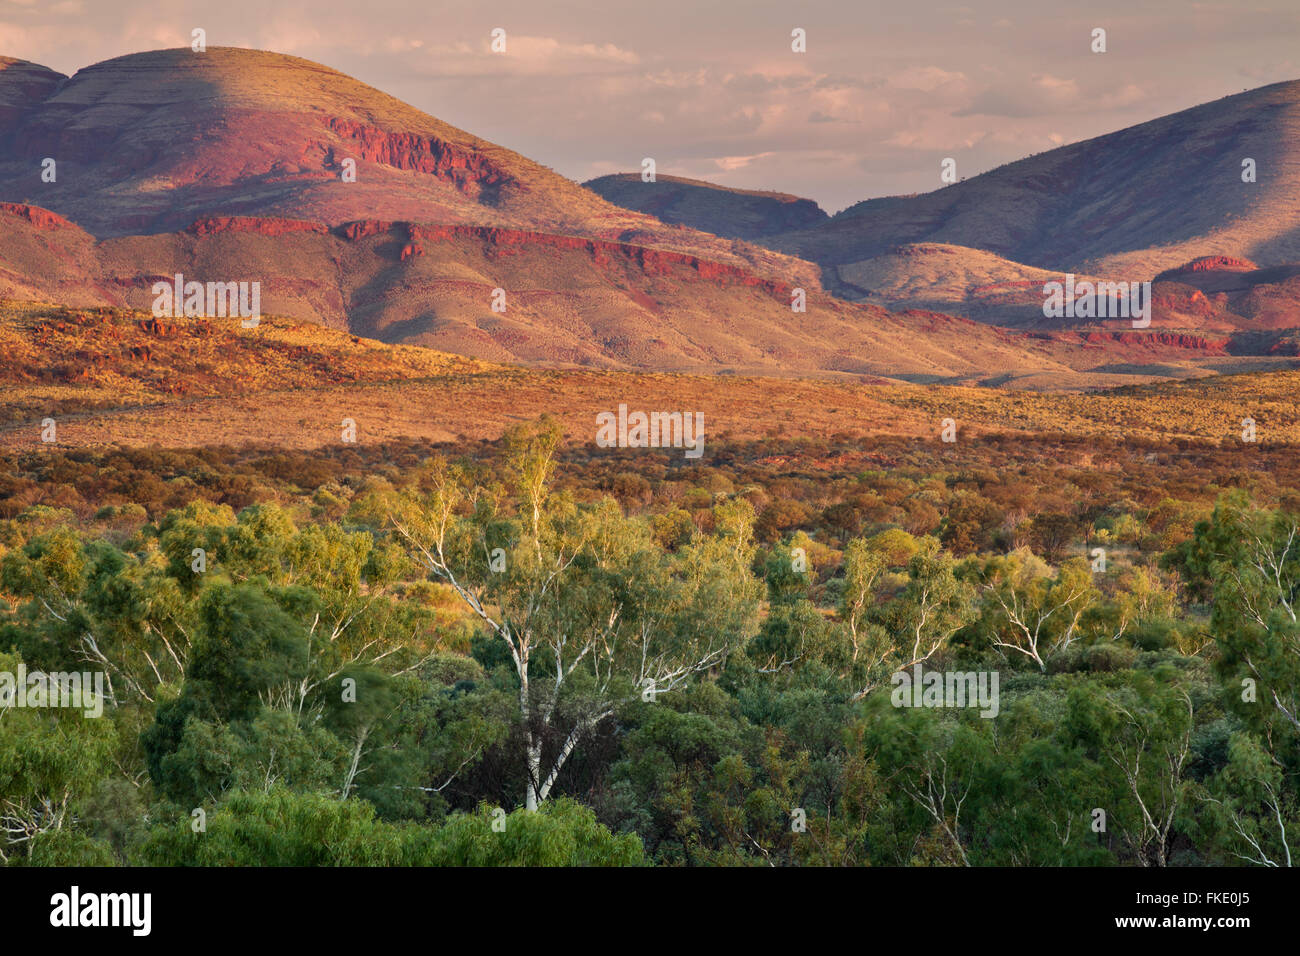 Pilbara, Australia occidentale Immagini Stock